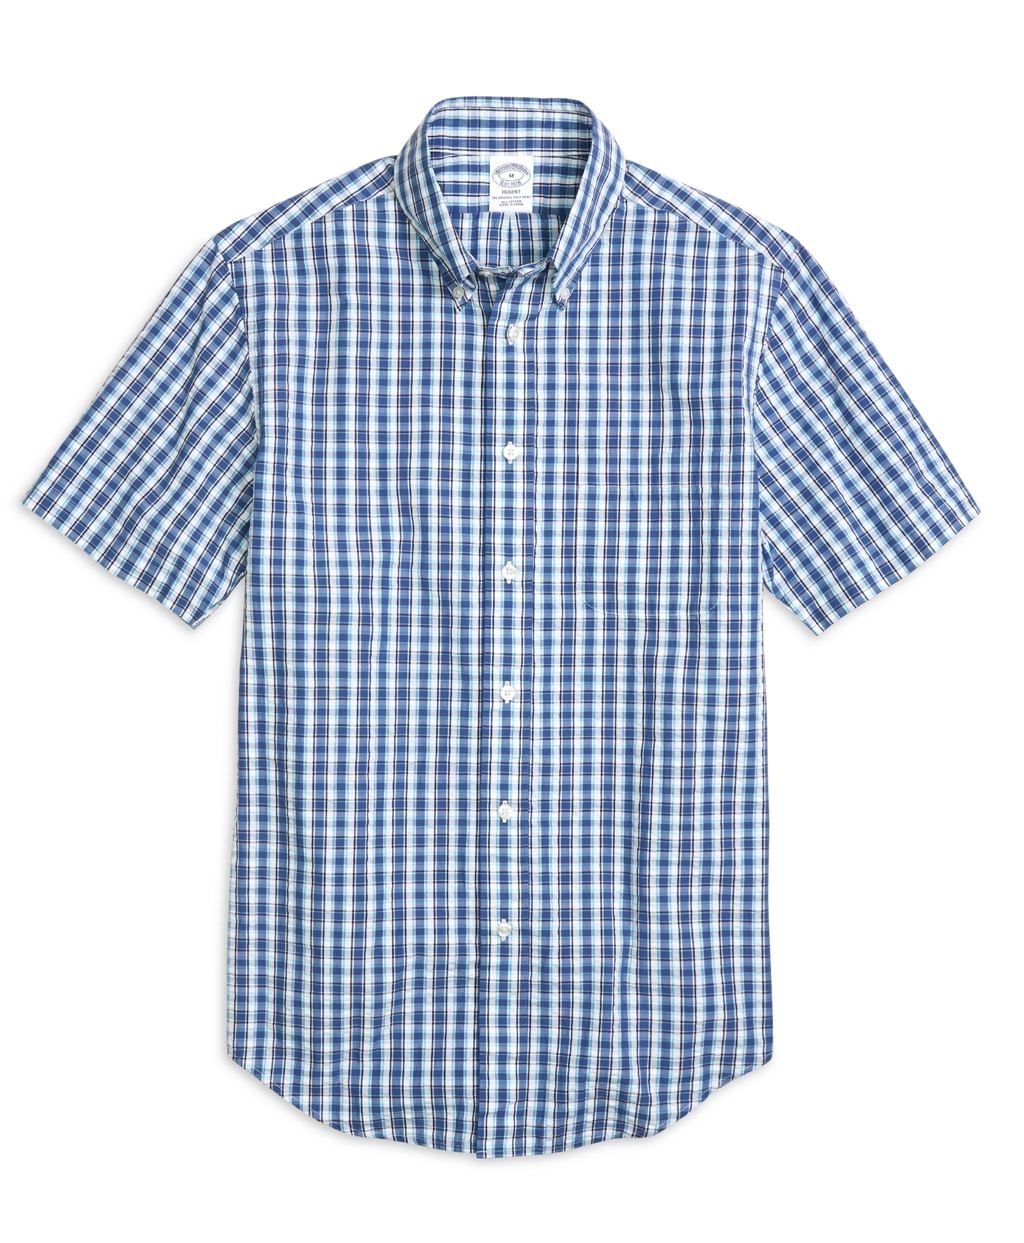 Brooks brothers madison fit plaid seersucker short sleeve for Mens short sleeve seersucker shirts